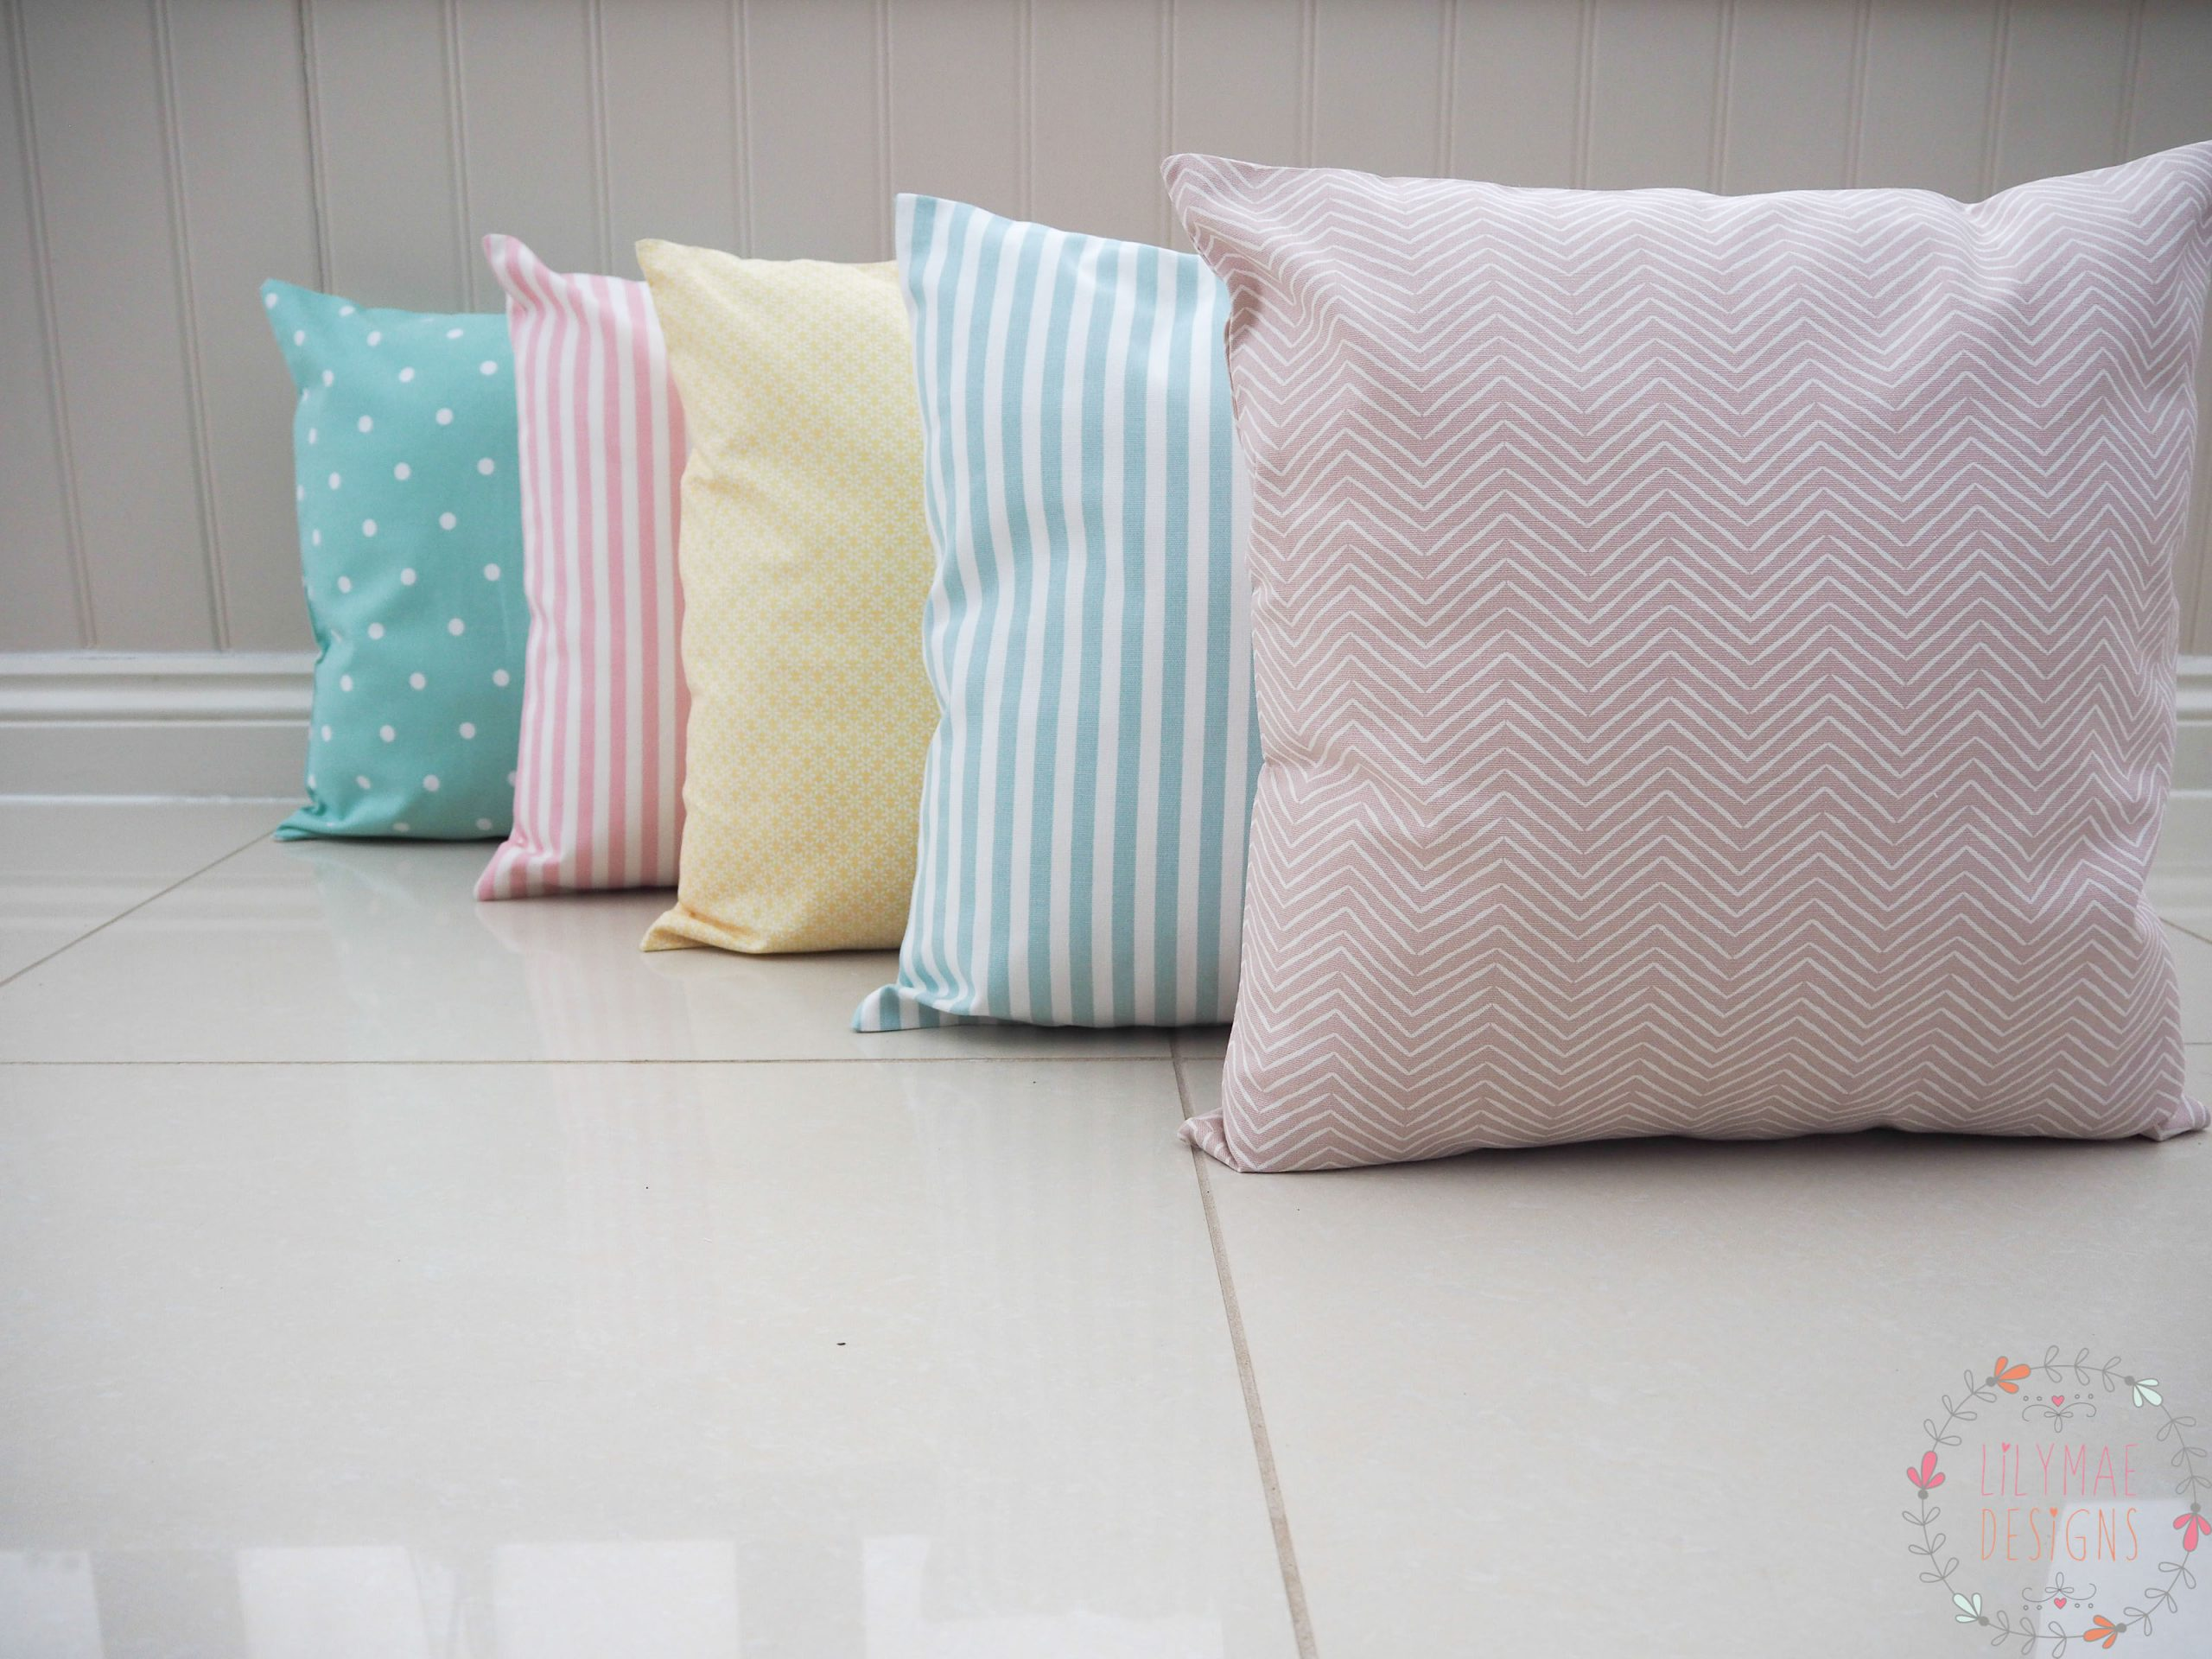 Cushion covers Scatter Cushions ★ Lilymae Designs ★ We offer many items including Extra Large Fabric Letters in sizes 22cm tall, 25cm tall, 30cm tall, 40cm tall, 50cm tall and 60cm tall., Fabric Hearts, Butterflies, Stars, Birds, Bunting, Memo Boards, Extra Large Memo Boards, Cushions, Lampshades, Curtains and Roman Blinds Available in any of our Clarke and Clarke and Prestigious Textiles fabrics. Custom fabric letter sizes available on request. Our Extra large letters make great nursery decor, wall decor and home decor in any room. Also great gifts, new baby gift, new baby present baby shower gift baby shower present christening gift christening present little brother little sister niece nephew grandson godson granddaughter goddaughter first birthday gift first birthday present children's birthday present children's birthday gift new home gift new home present teacher gift teacher present dinner party gift dinner party present mum present mum gift sister gift sister present first home gift first home present wedding gift wedding present personalised gift personalised present best friends present best friend gift baby boy gift baby girl gift baby boy present baby girl present wedding gift wedding present flower girl gift flower girl present page boy gift page boy present bridesmaid present bridesmaid gift rainbow baby gift baby after loss gift tommys charity stillbirth awareness mothers day gift mothers day present mum gift mum present Personalised, handmade and made to order here within the UK Extra Large Letter Name Sets